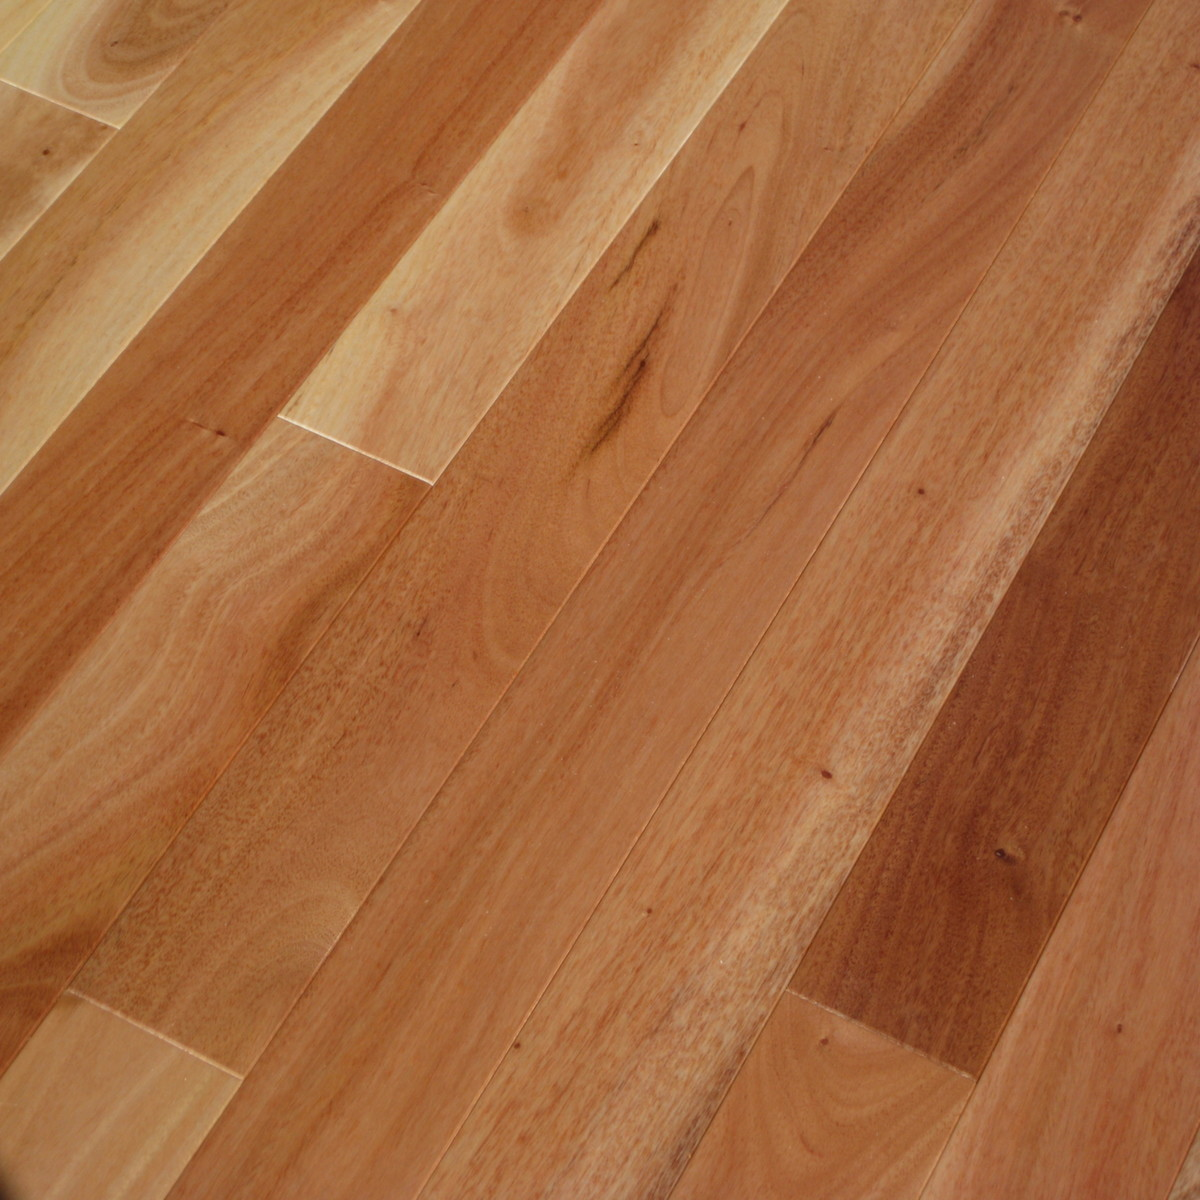 Amendoim hardwood flooring brazilian oak flooring for Hardwood plank flooring